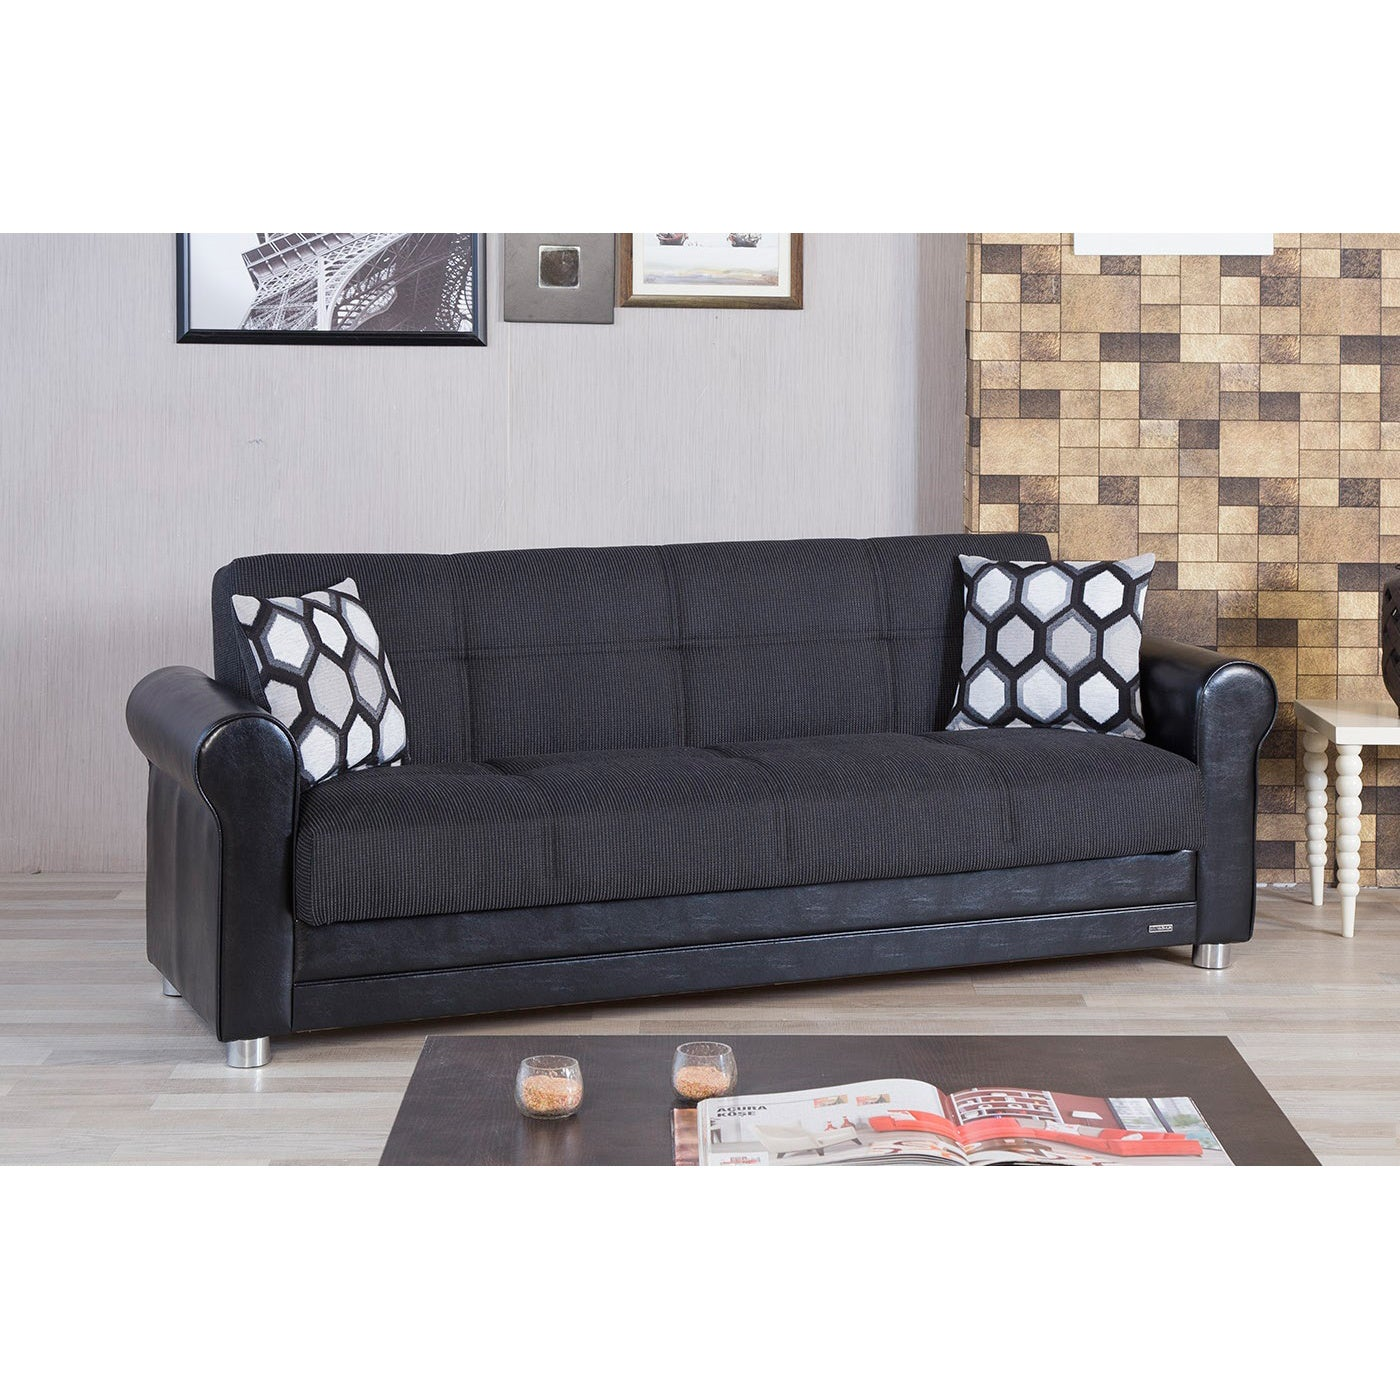 Avalon Futon Convertible Sleeper Sofa Bed On Free Shipping Today Com 11854472